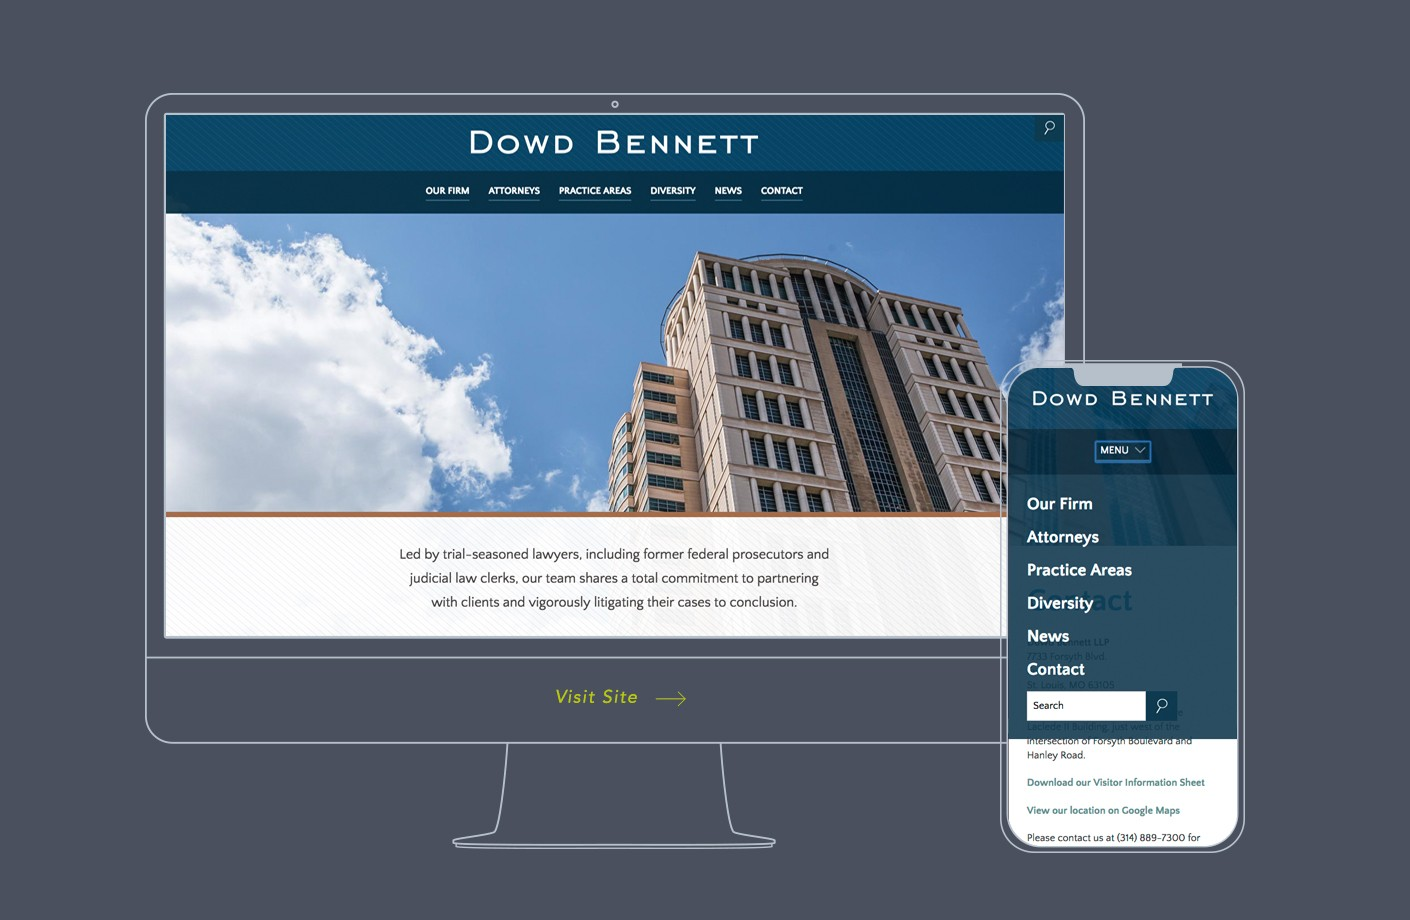 The new mobile-friendly, responsive web design for Dowd Bennett.